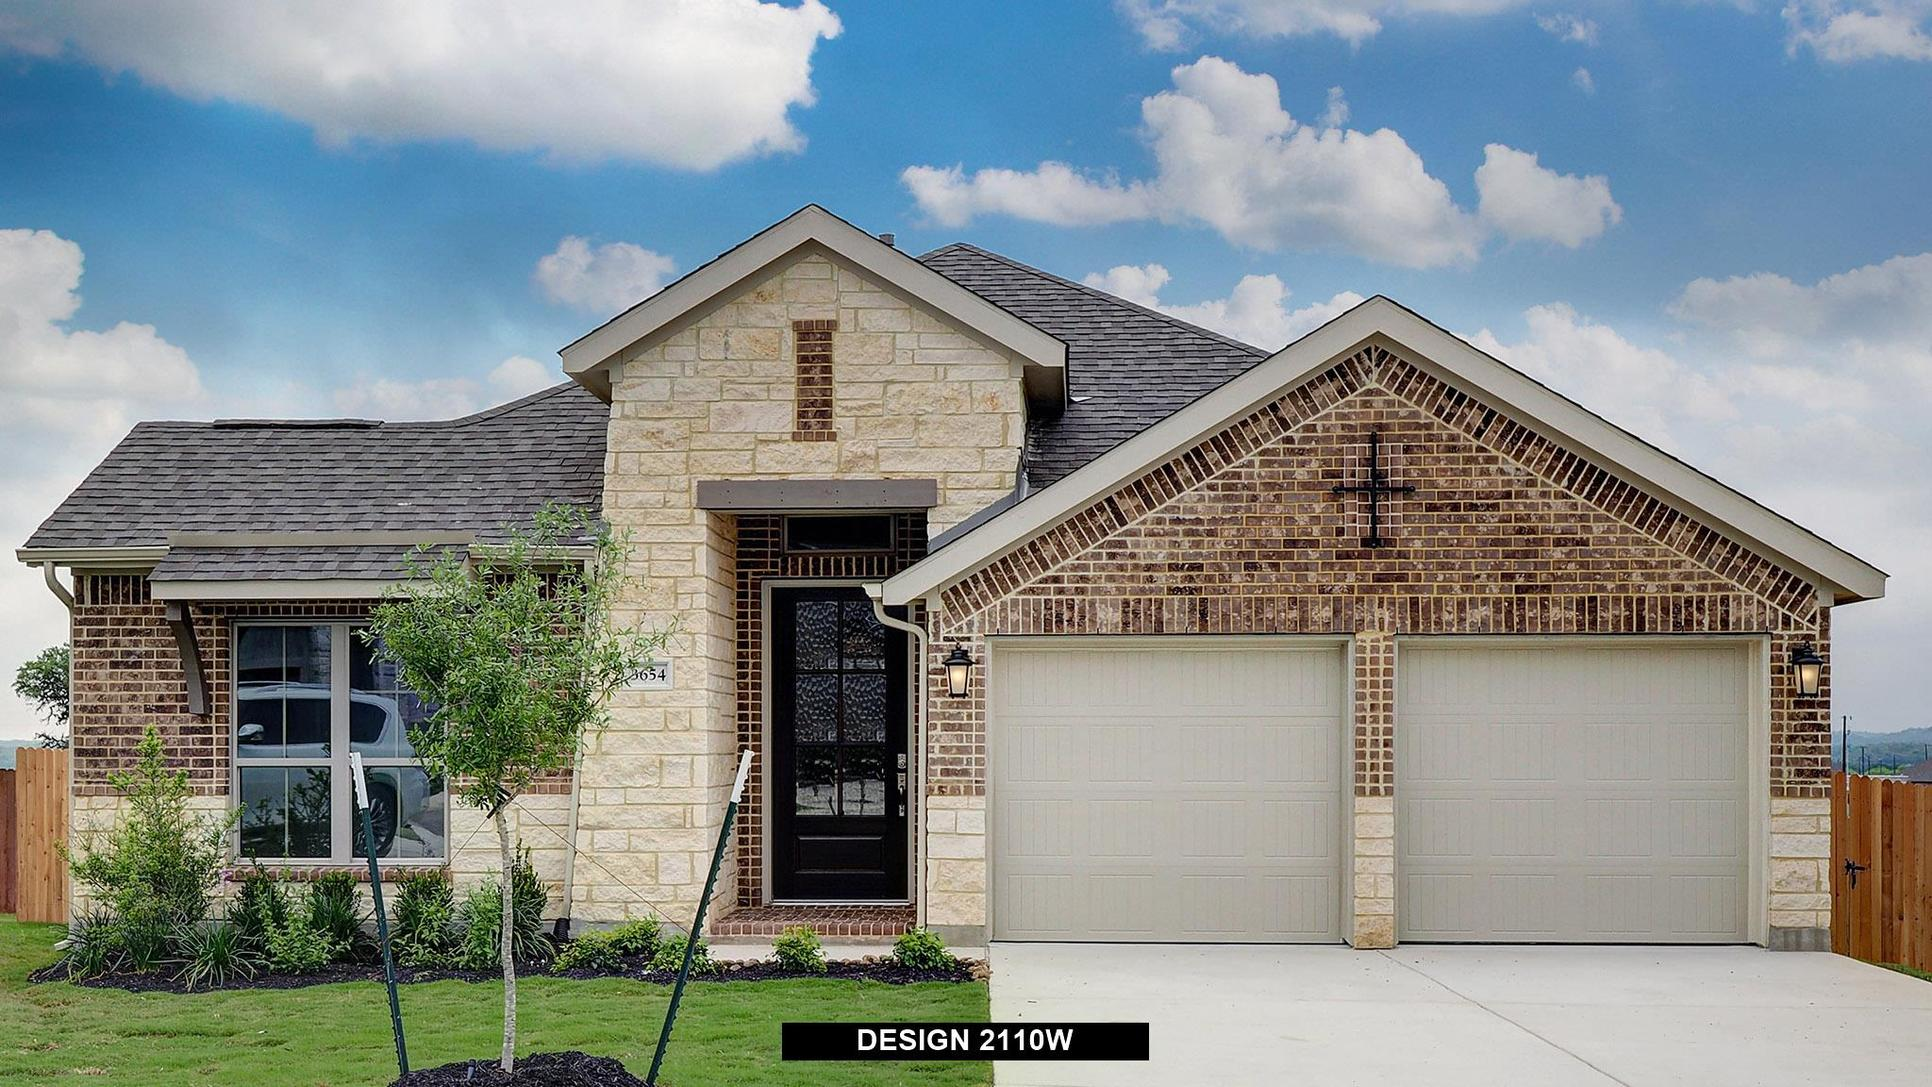 Plan 2110W:Representative photo.  Features and specifications may vary by community.